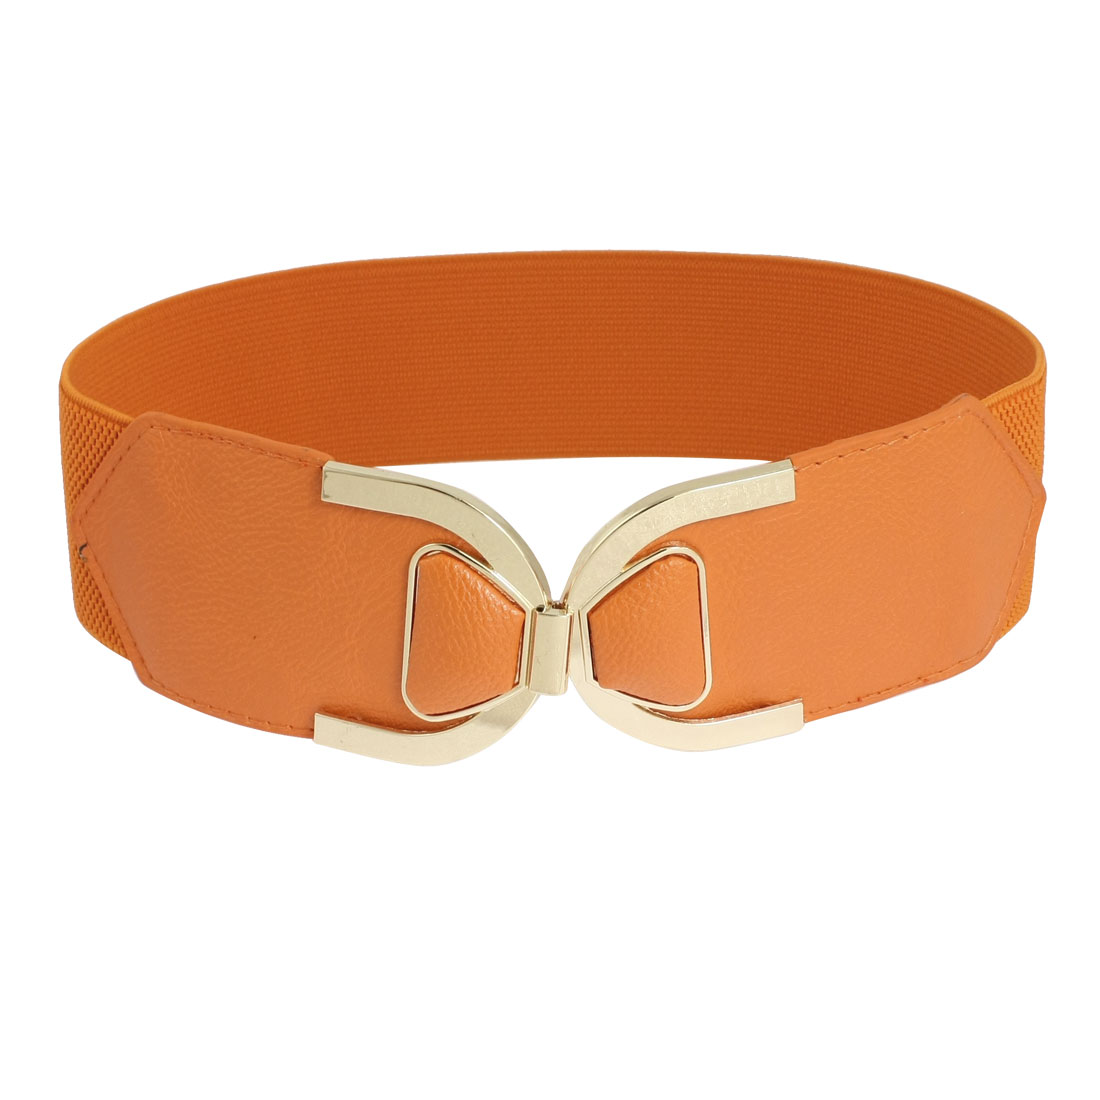 Orange Faux Leather Elastic Cinch Band Waist Belt for Woman